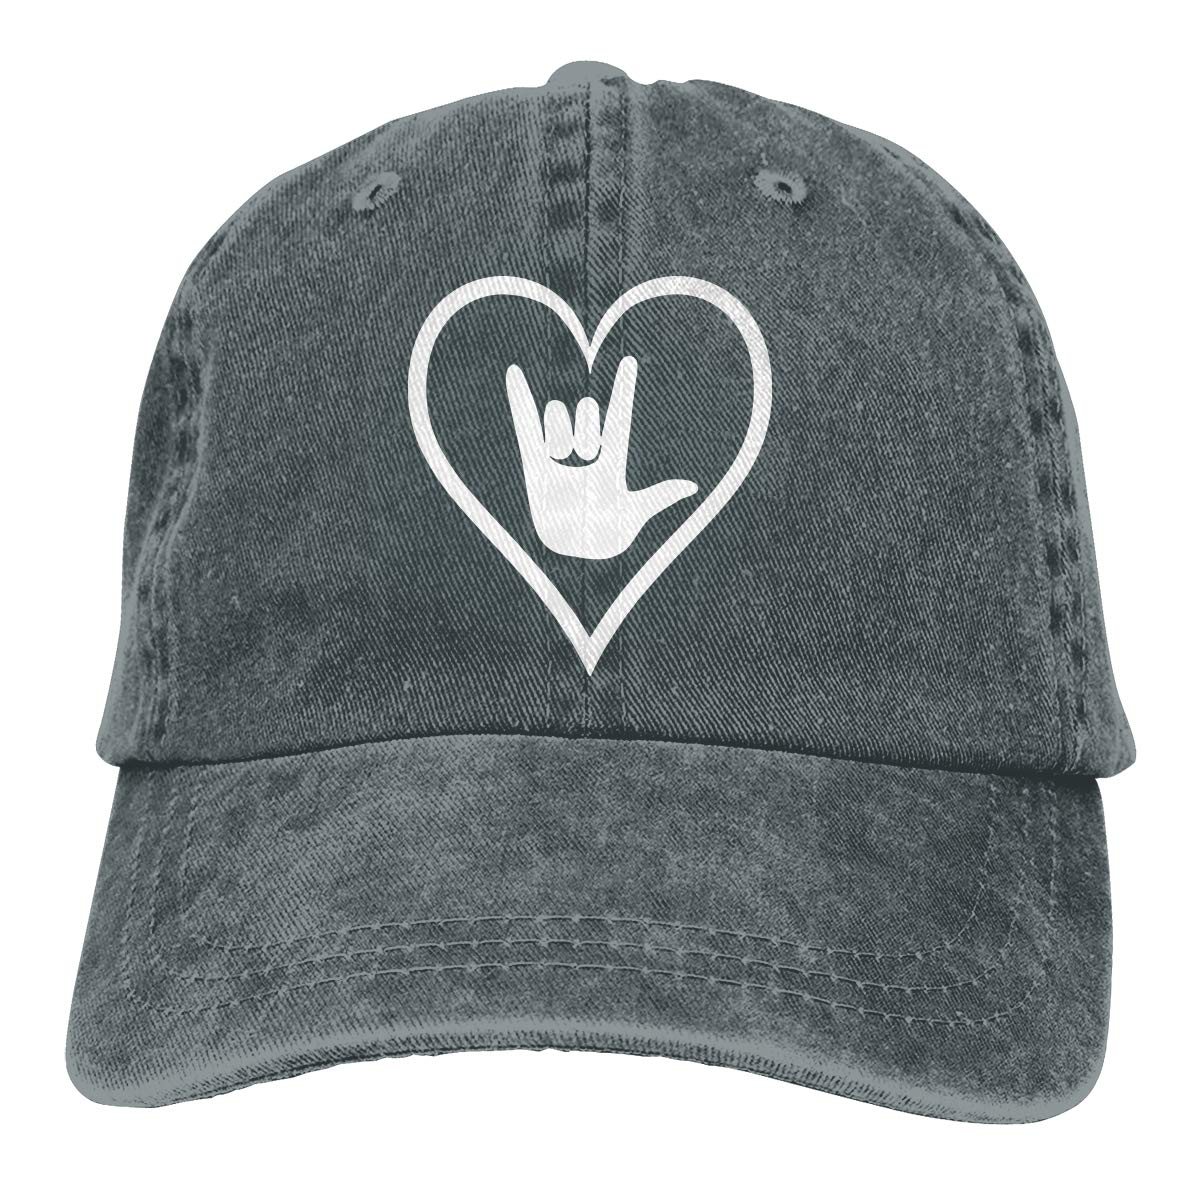 ASL I Love You Adult Personalize Jeans Outdoor Sports Hat Adjustable Baseball Cap American Sign Language